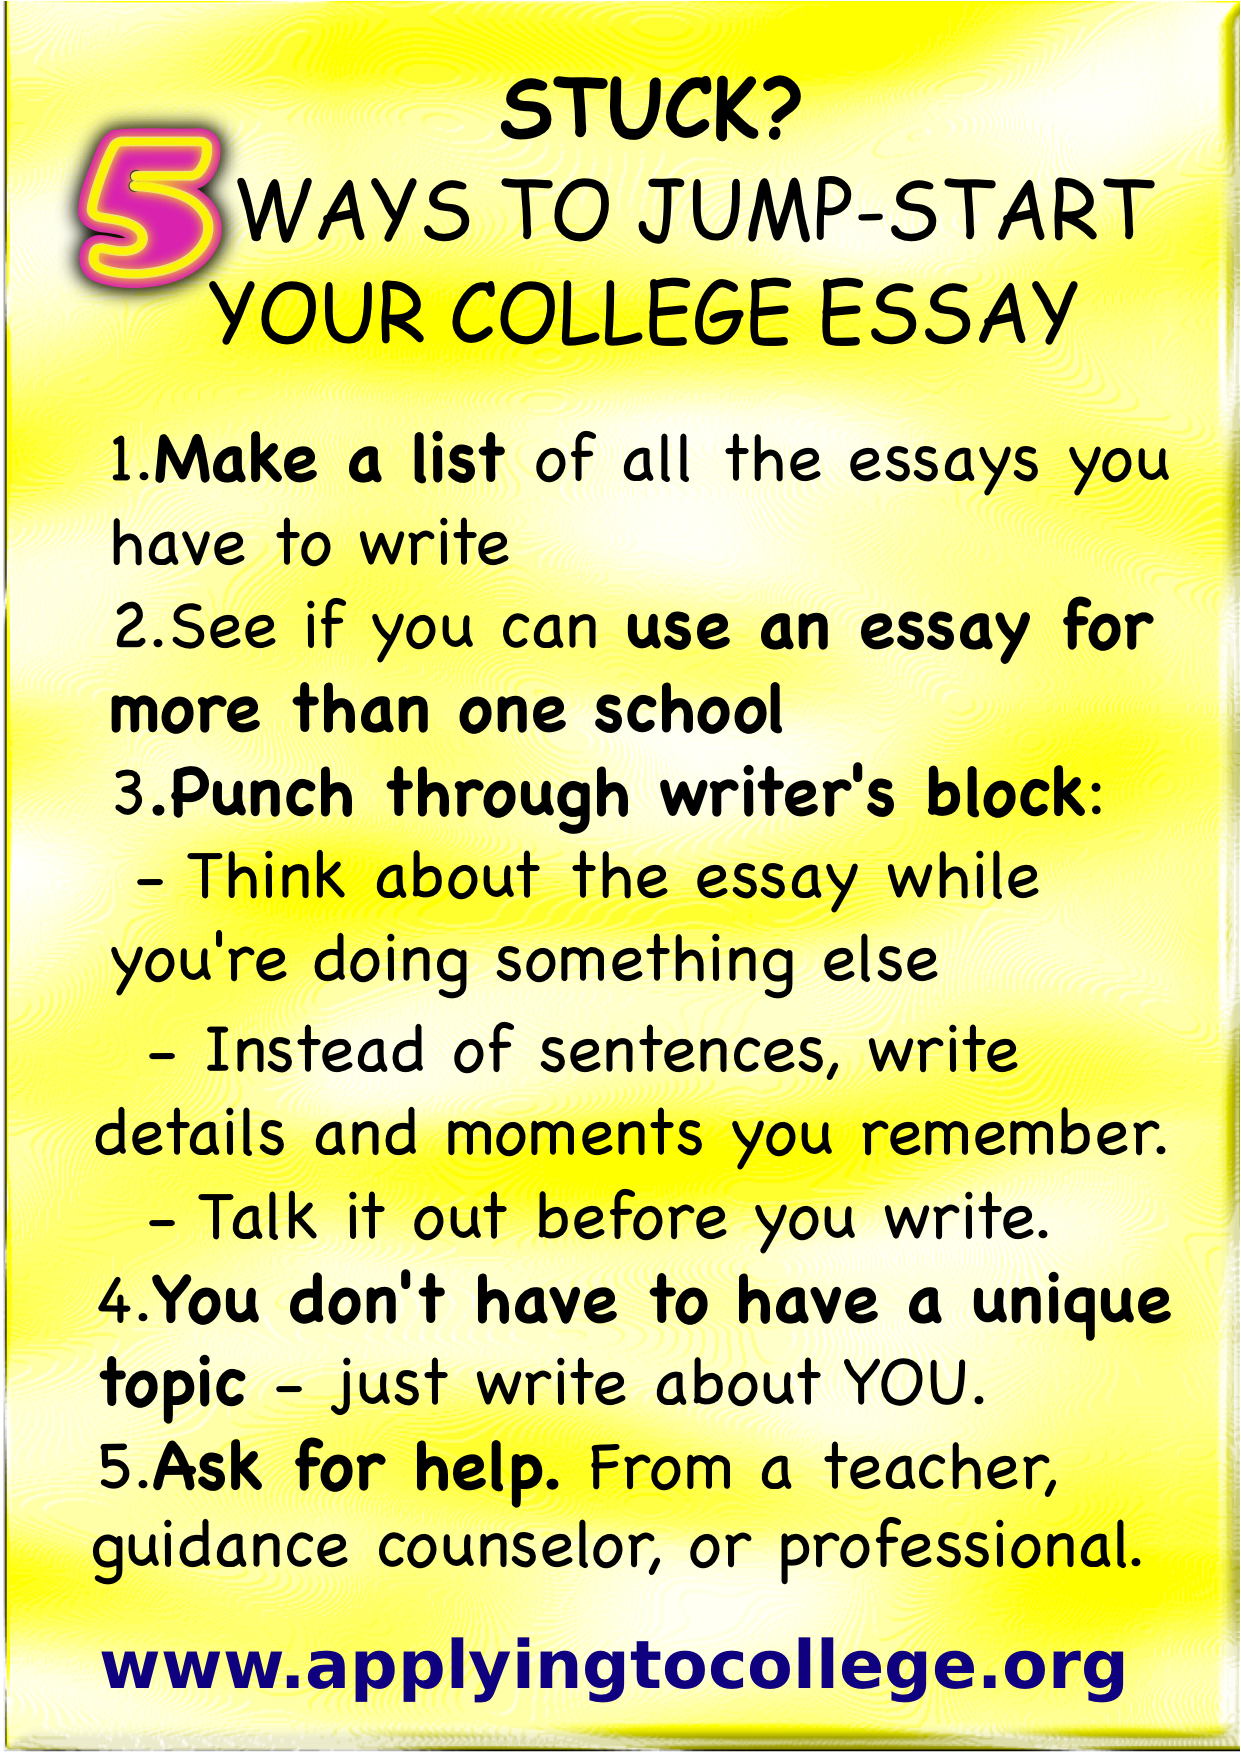 College admission essay hints